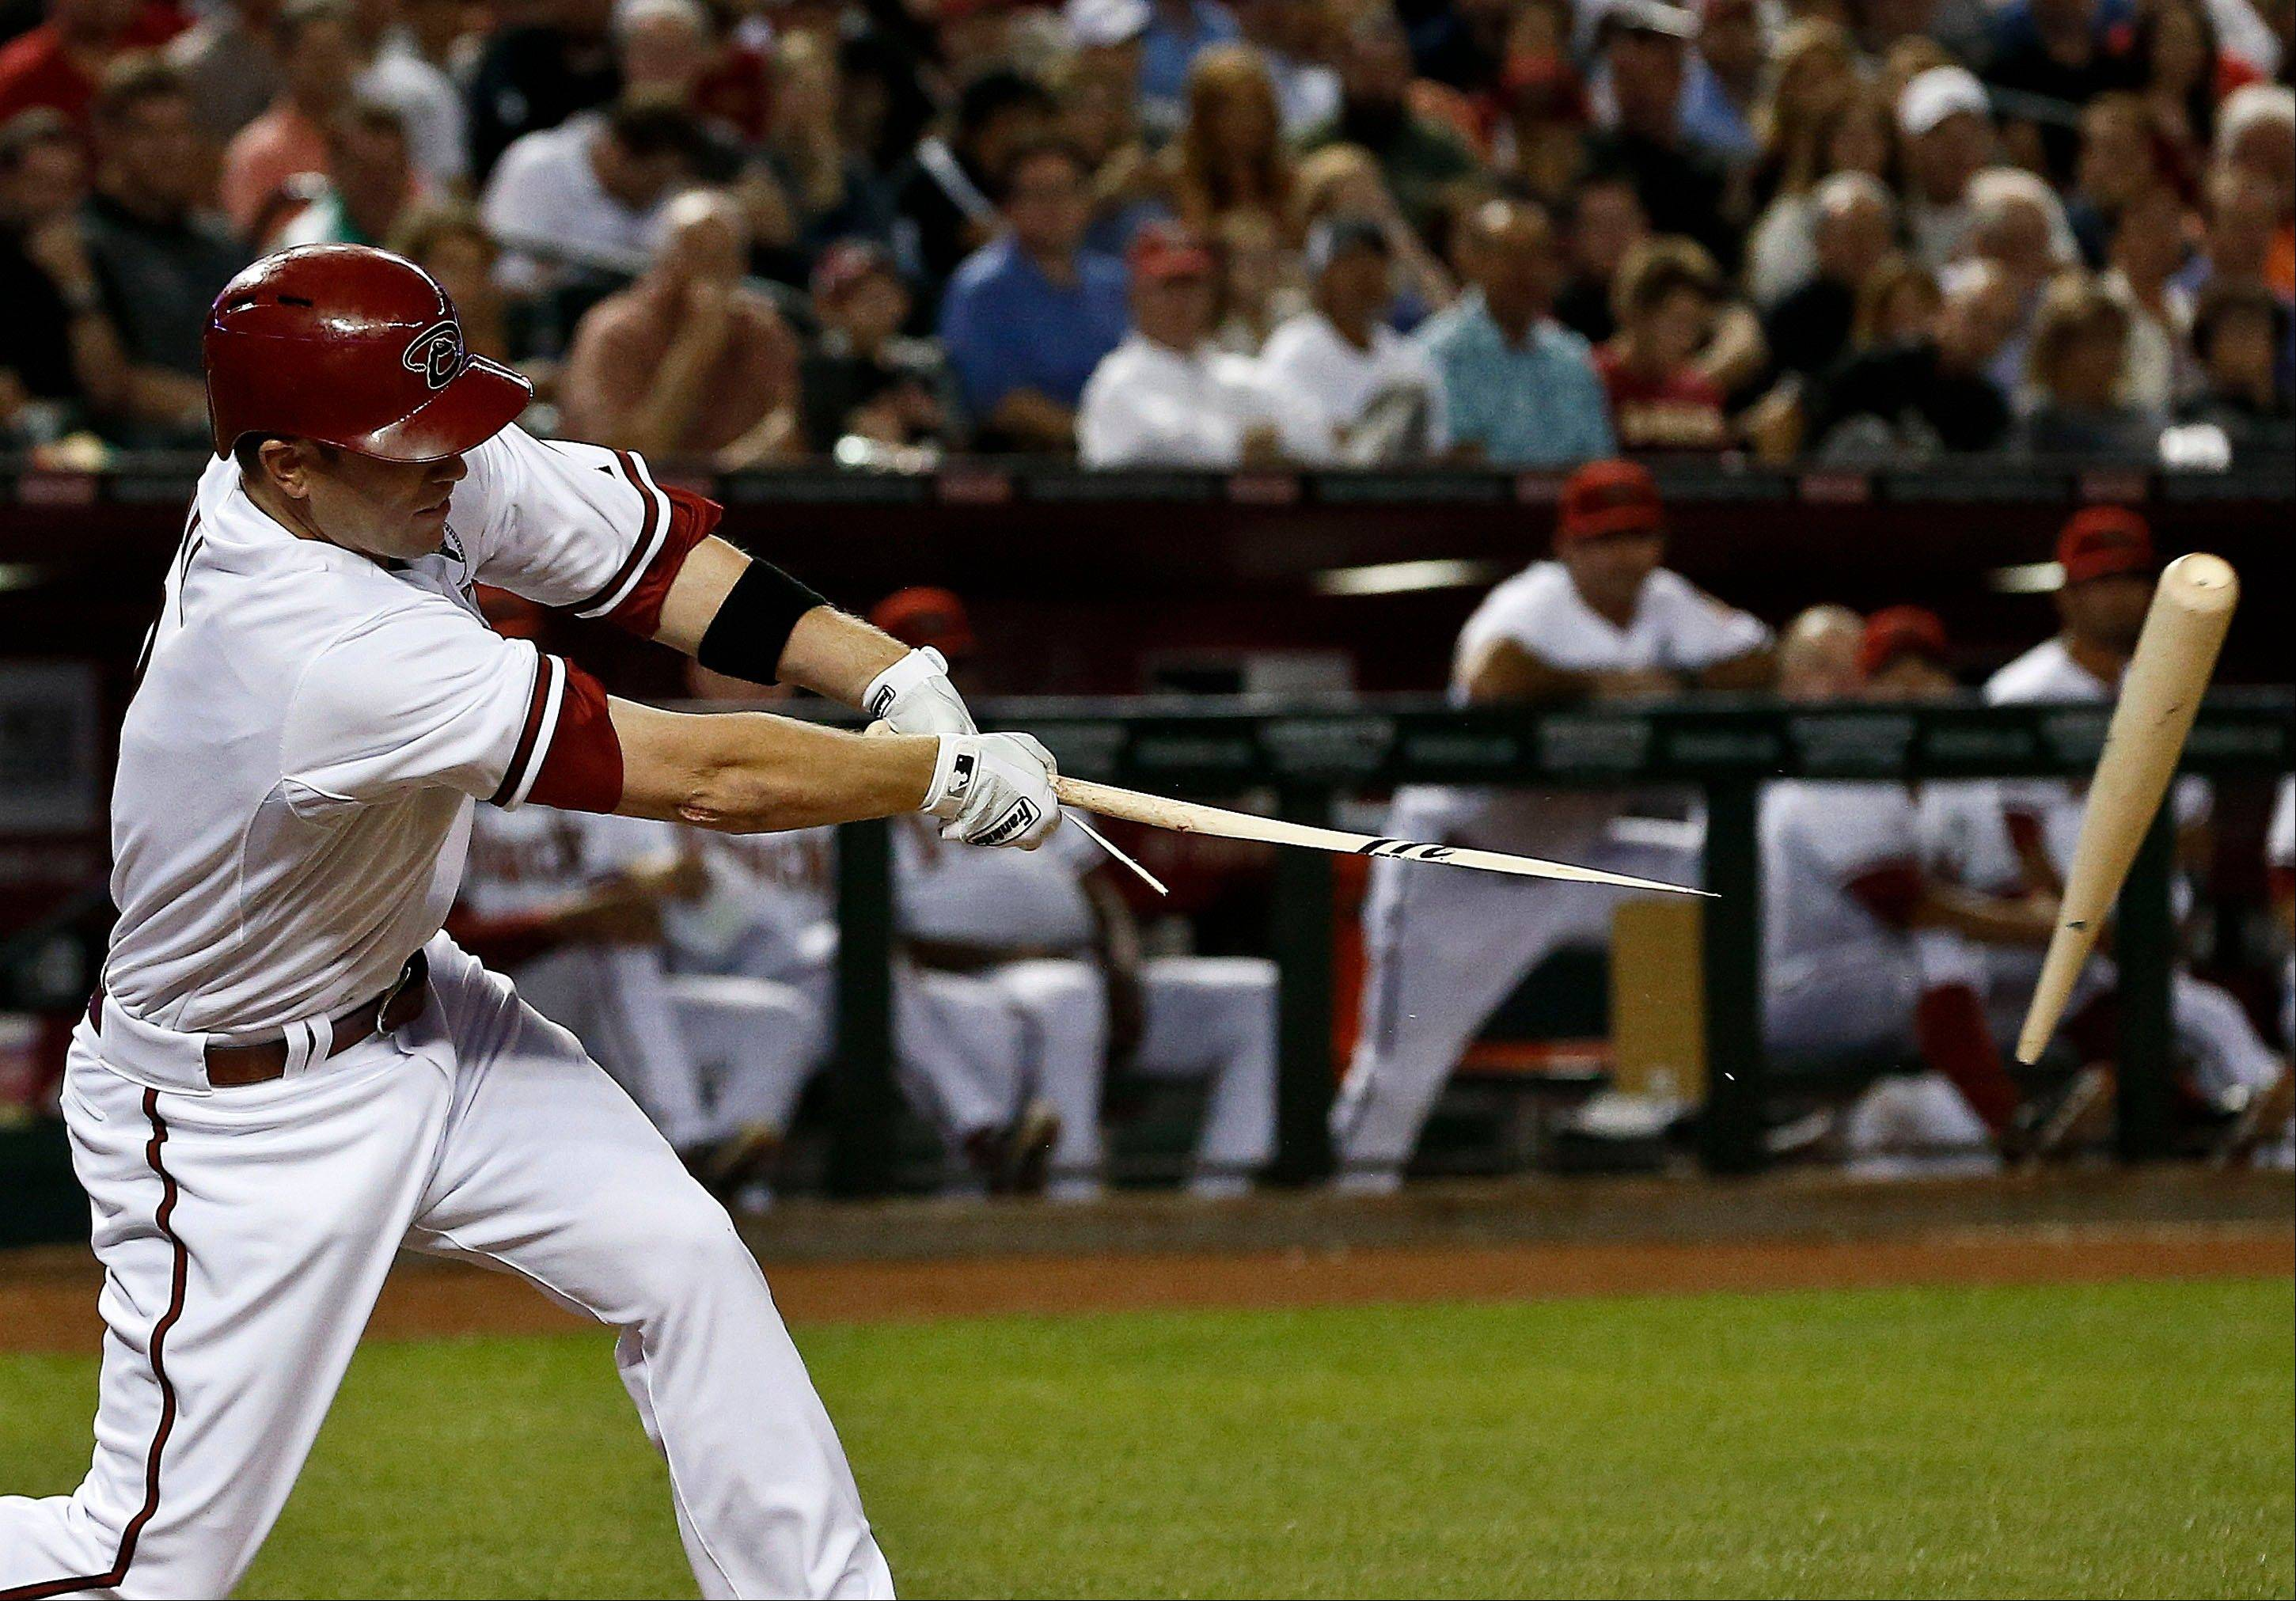 The Diamondbacks� Aaron Hill breaks his bat but connects for an RBI hit against the St. Louis Cardinals in the fifth inning Monday on Opening Day in Phoenix.